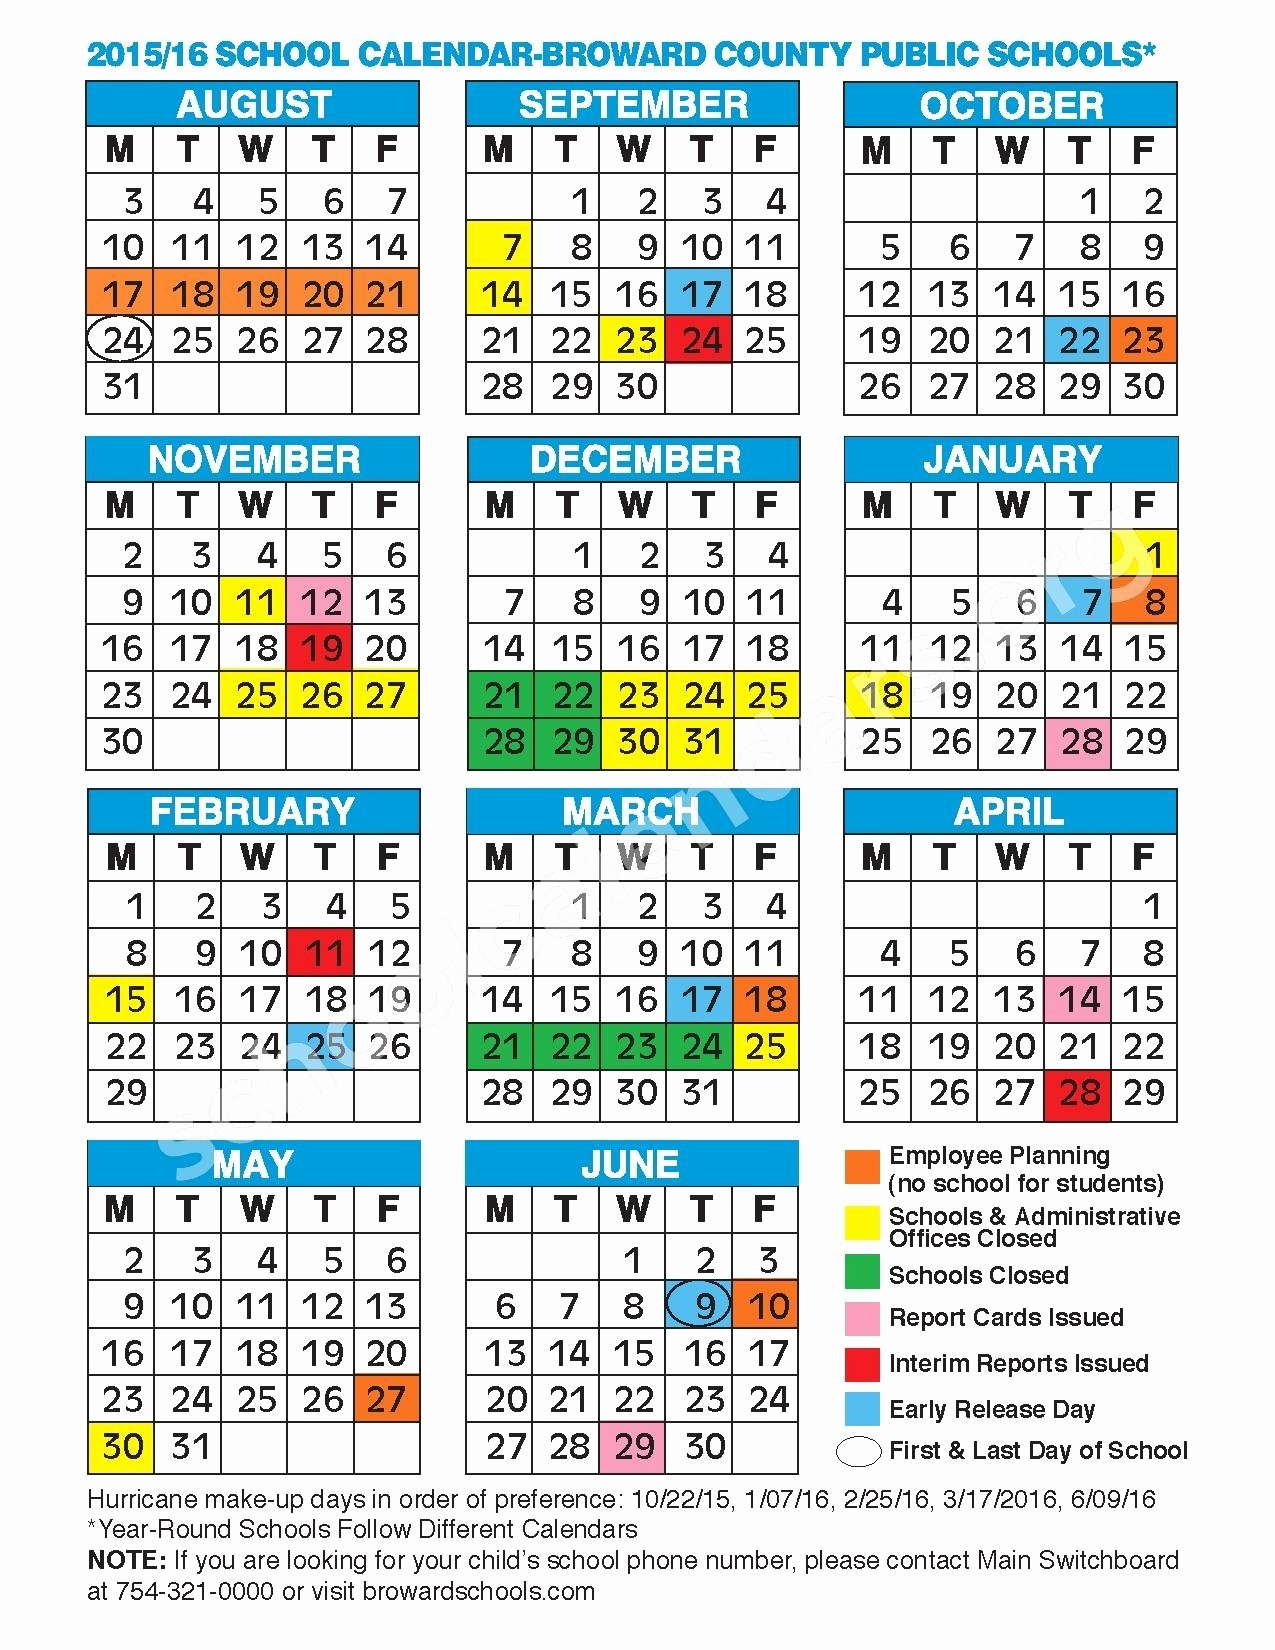 2019 2020 School Calendar Broward Melbourne Senior High School_School Calendar For Broward County